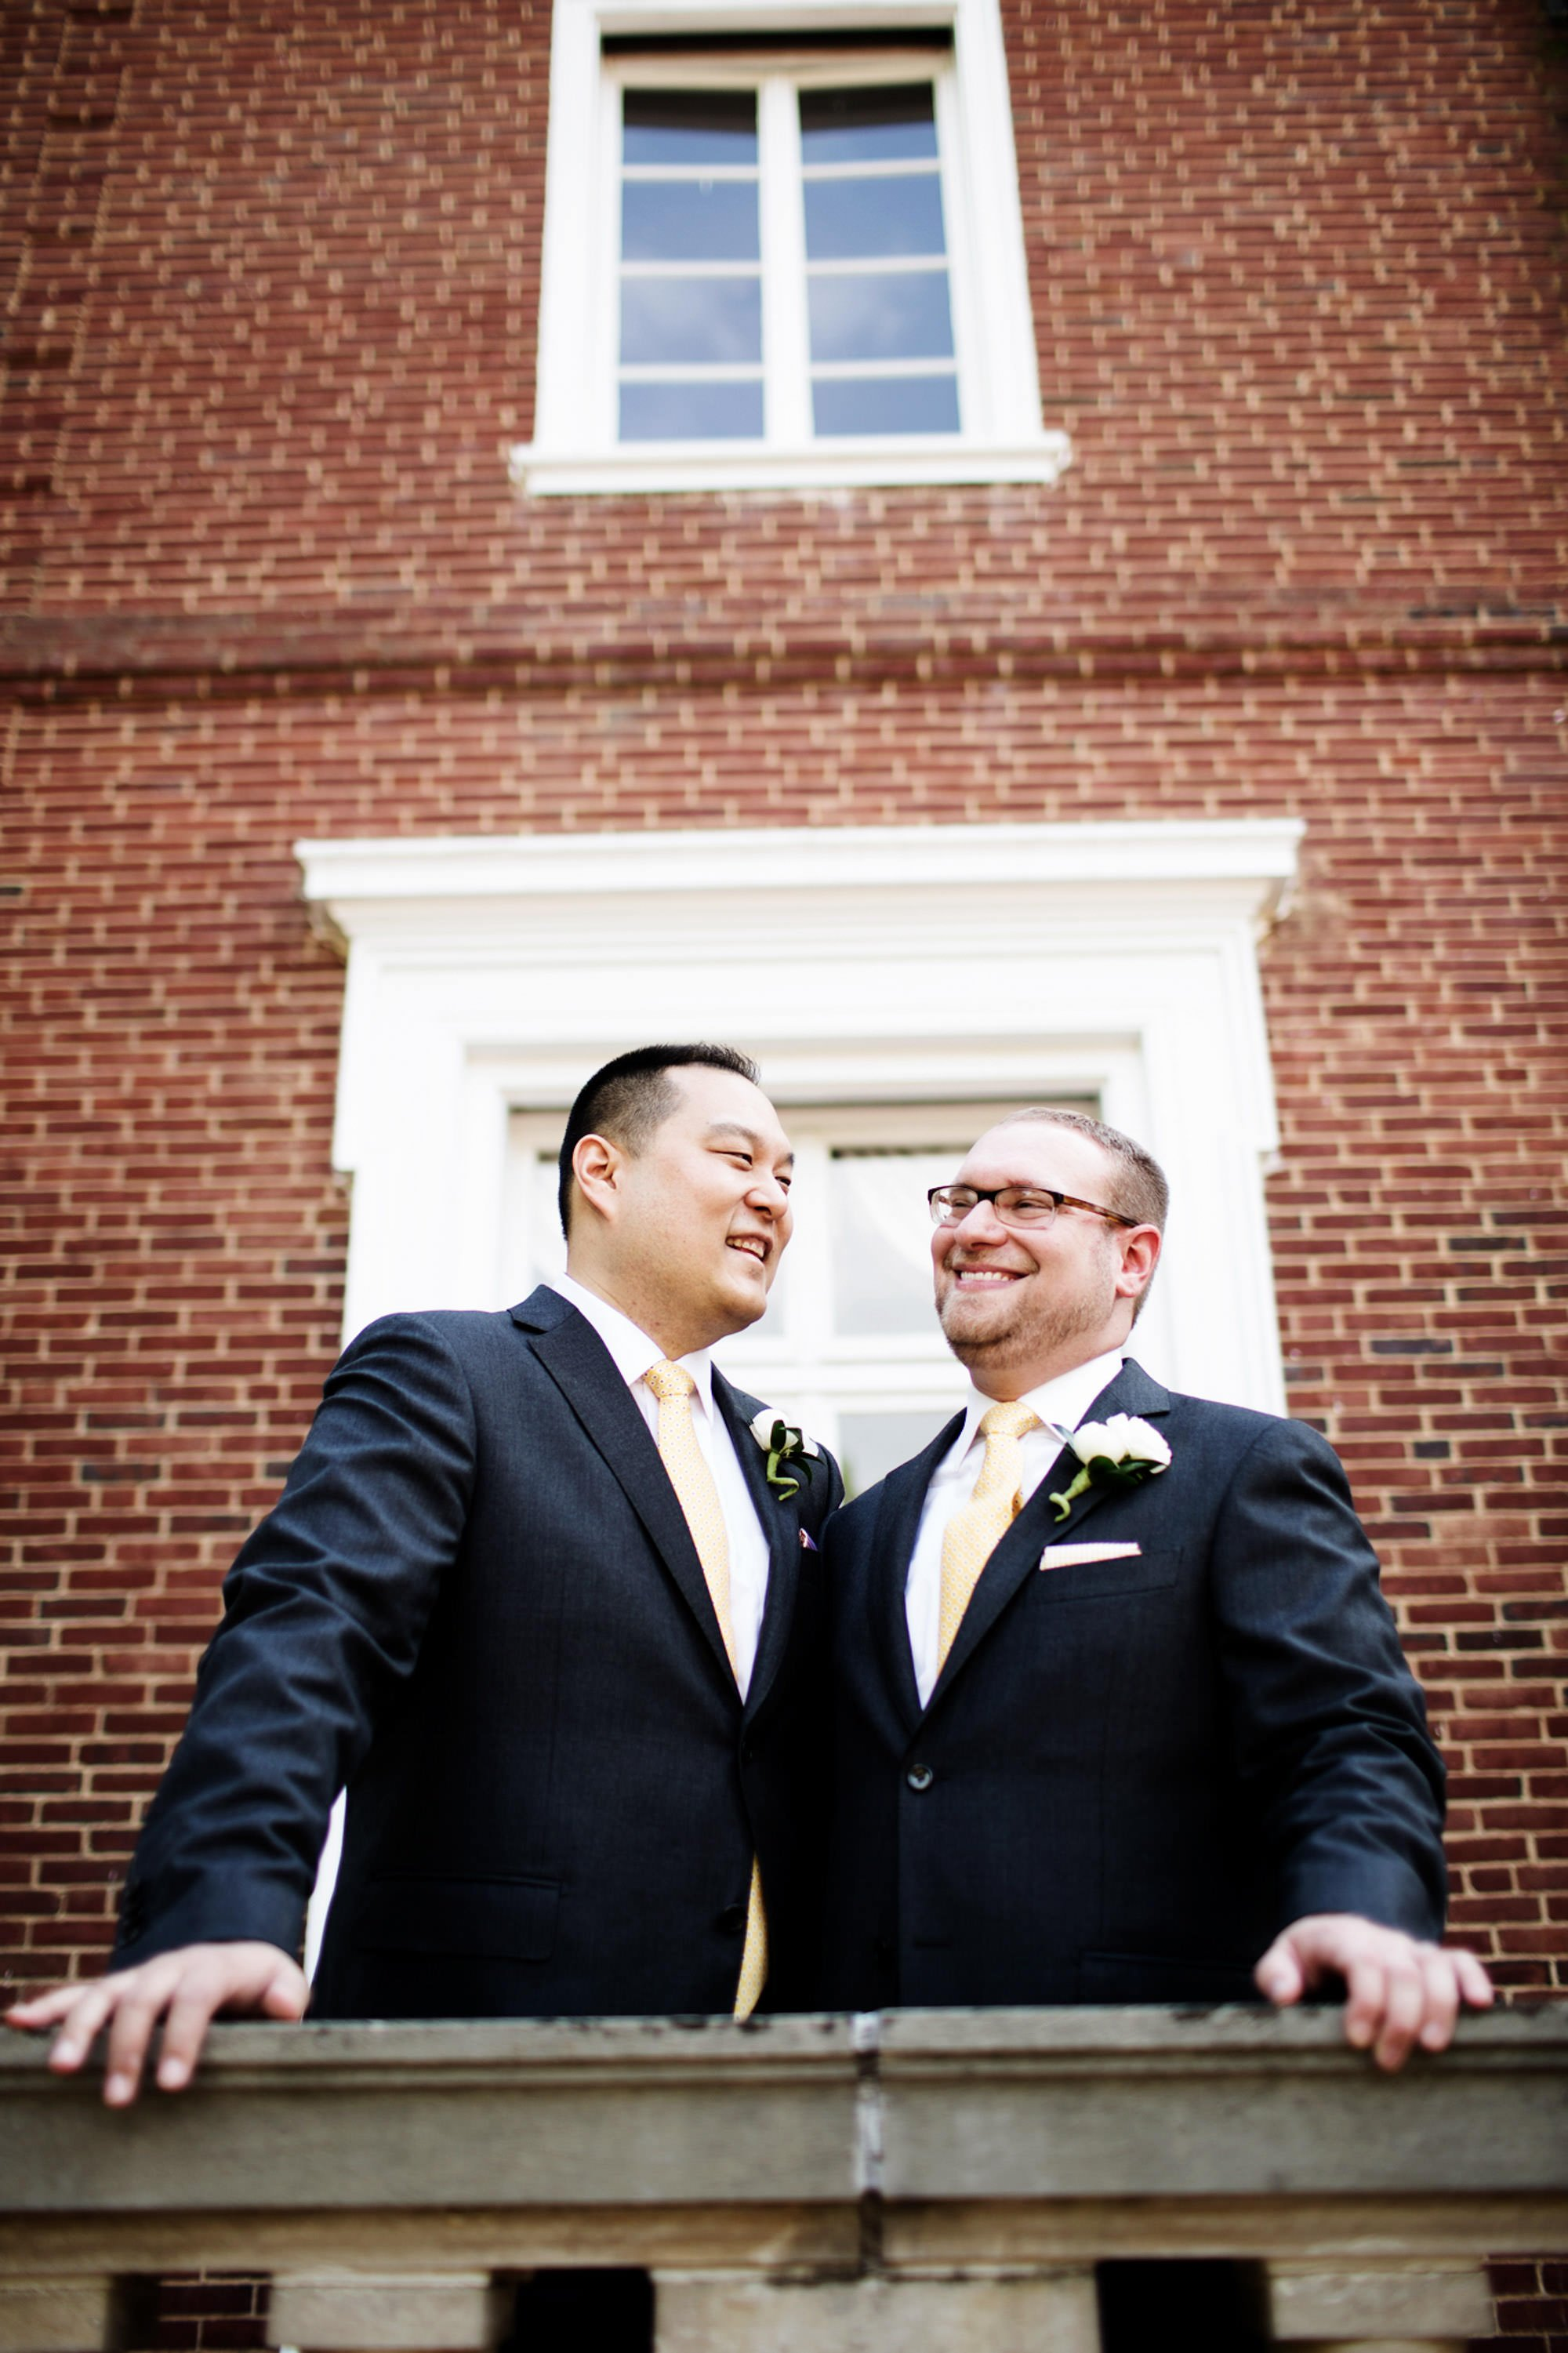 The grooms smile prior to their wedding ceremony at Oxon Hill Manor.